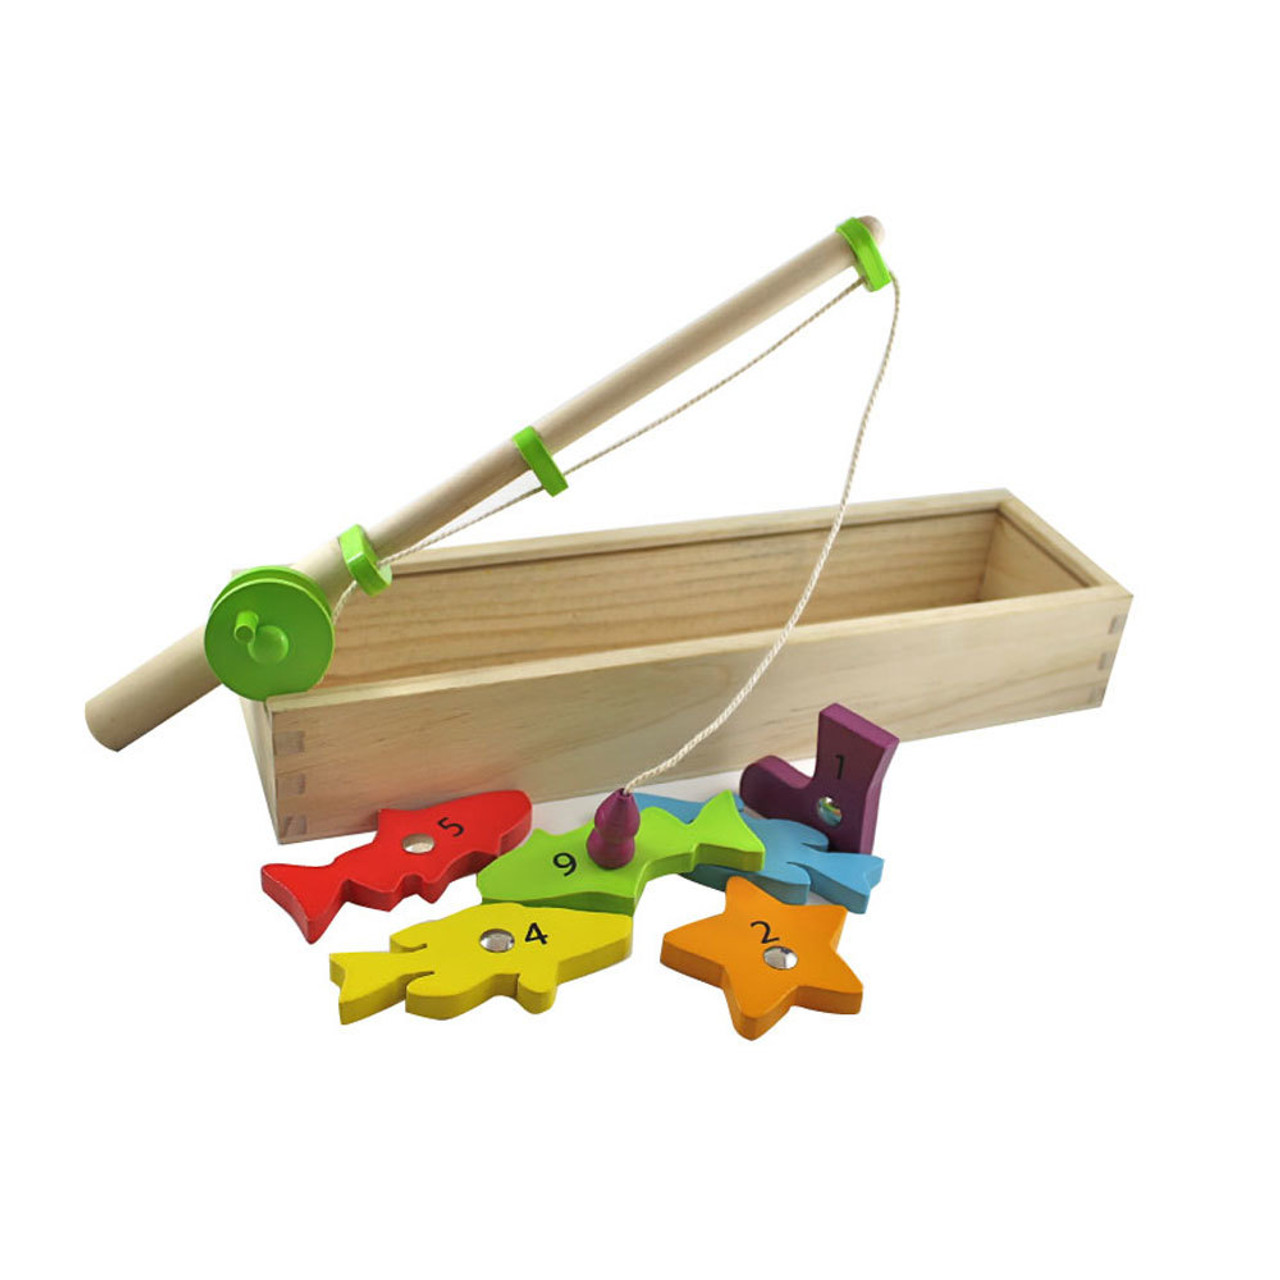 Discoveroo Wooden Magnetic Fishing Game